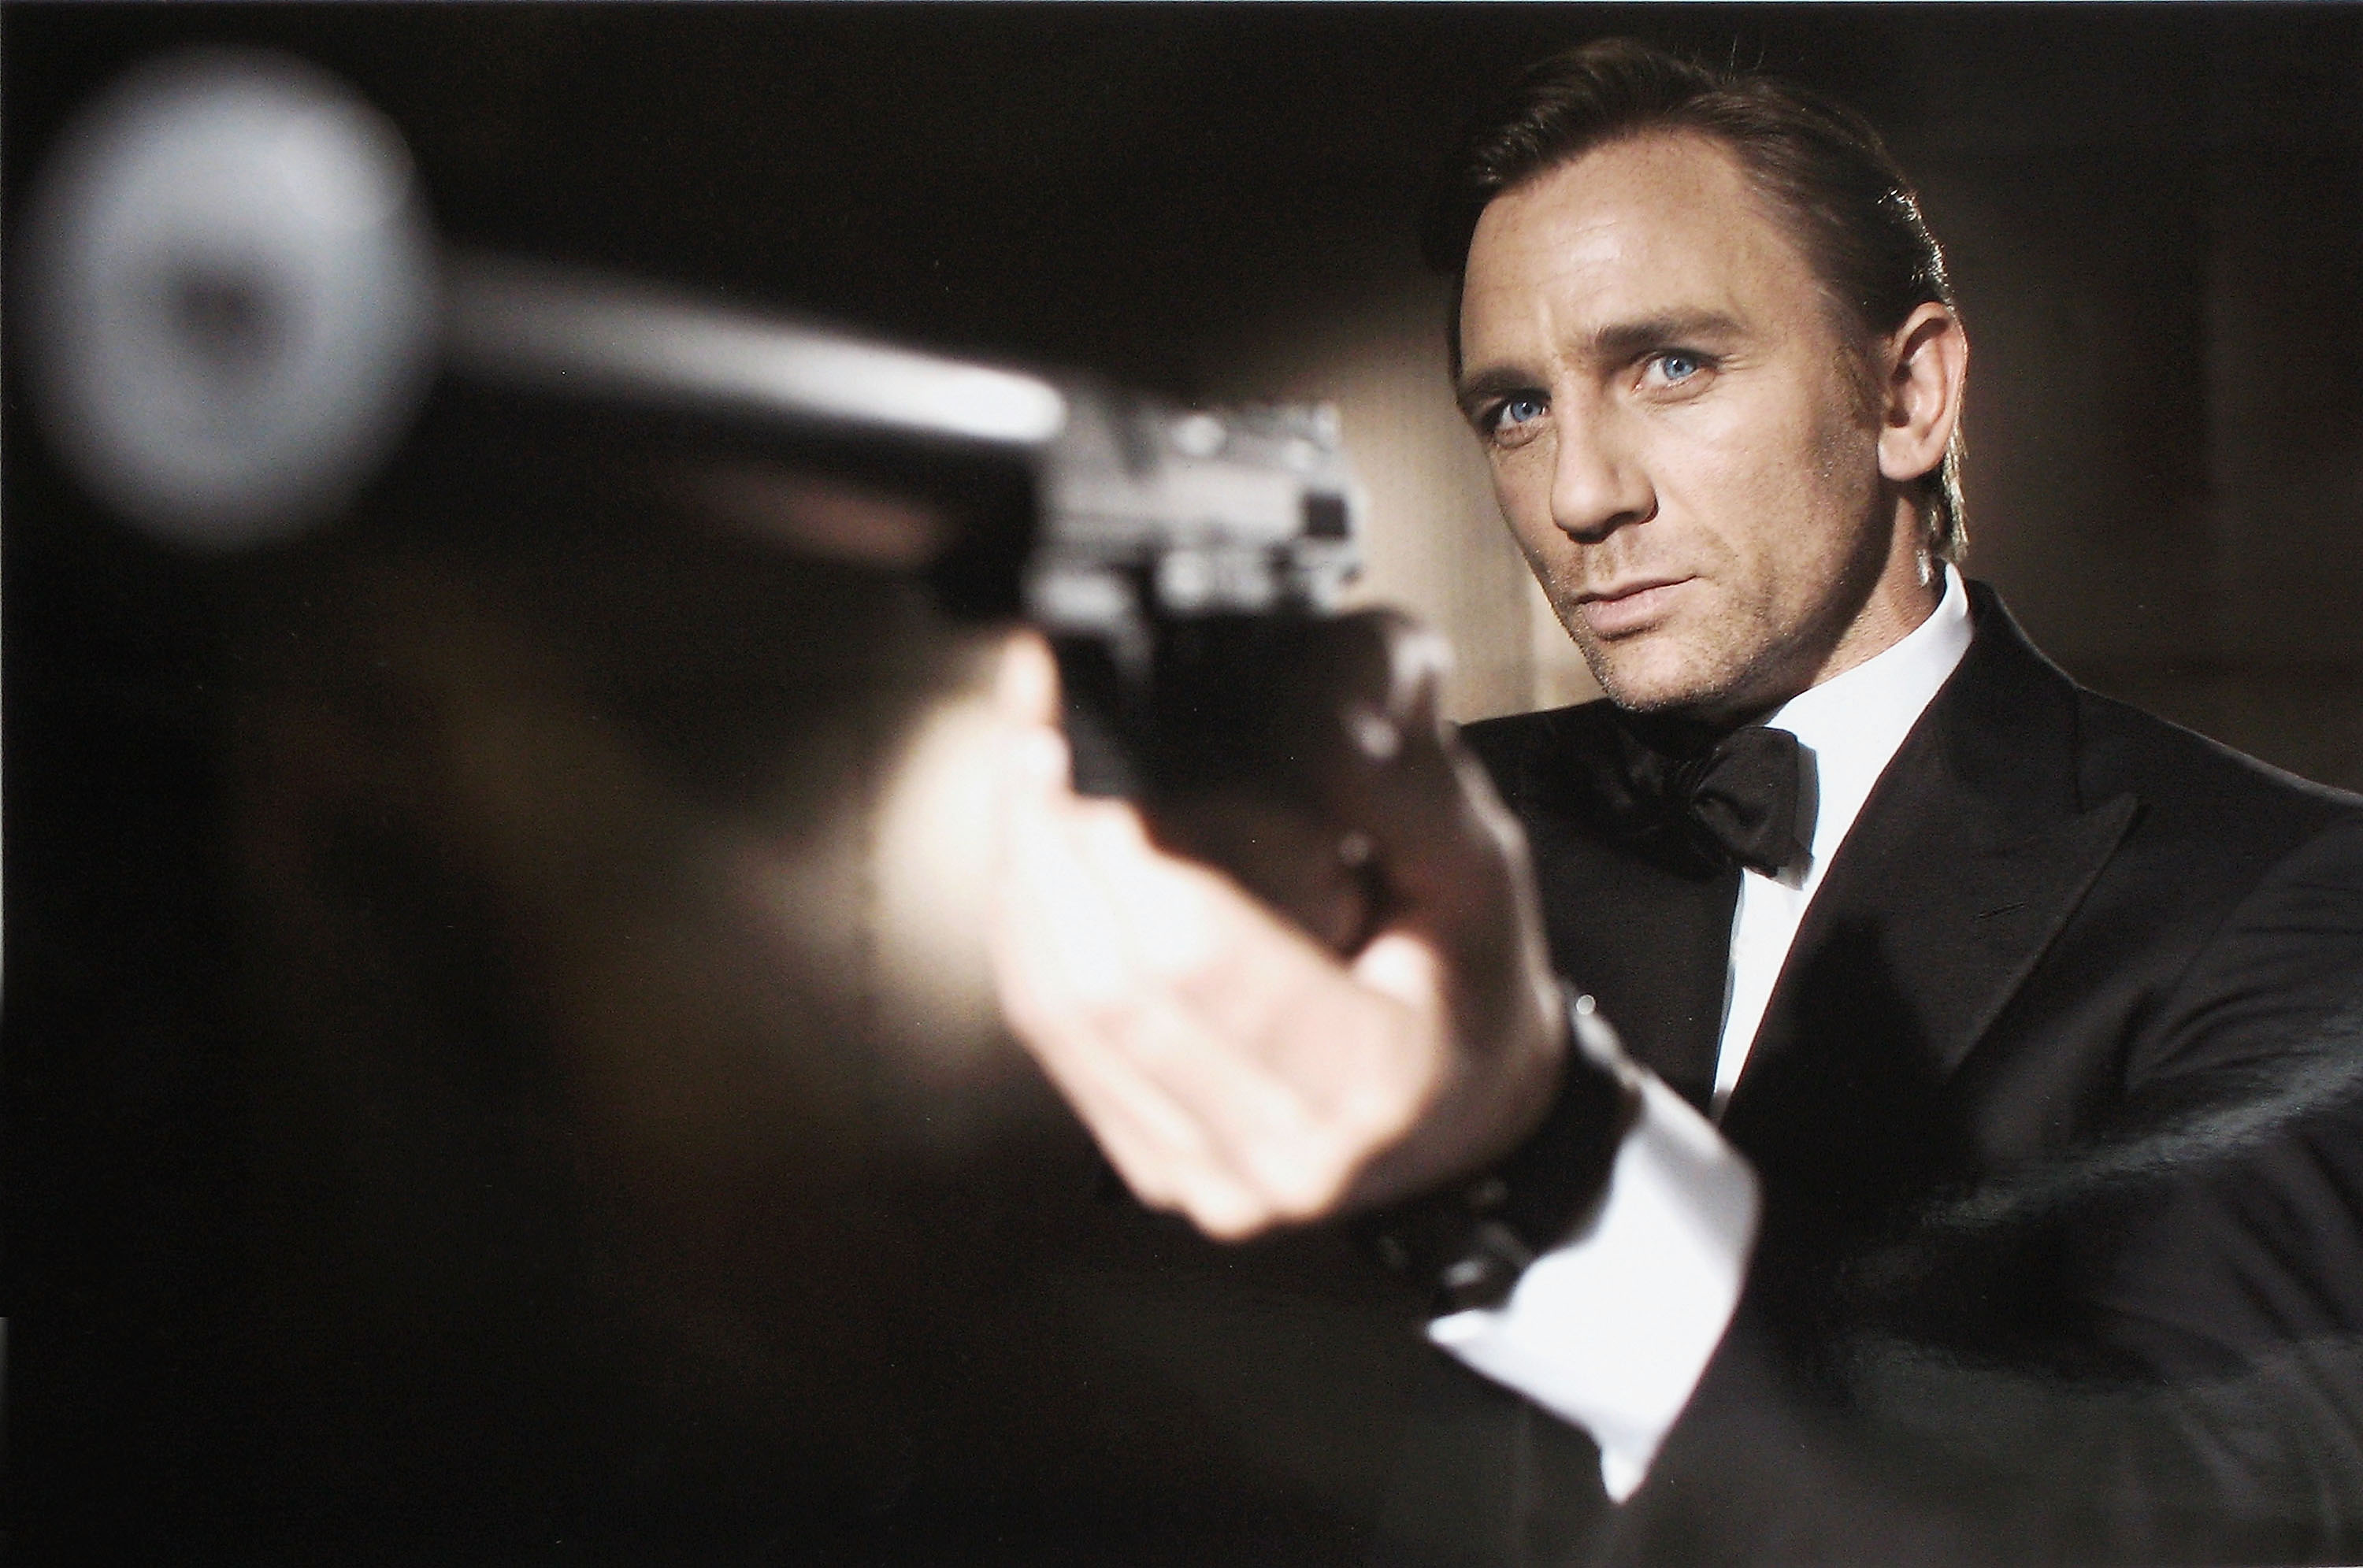 Actor Daniel Craig poses as James Bond.